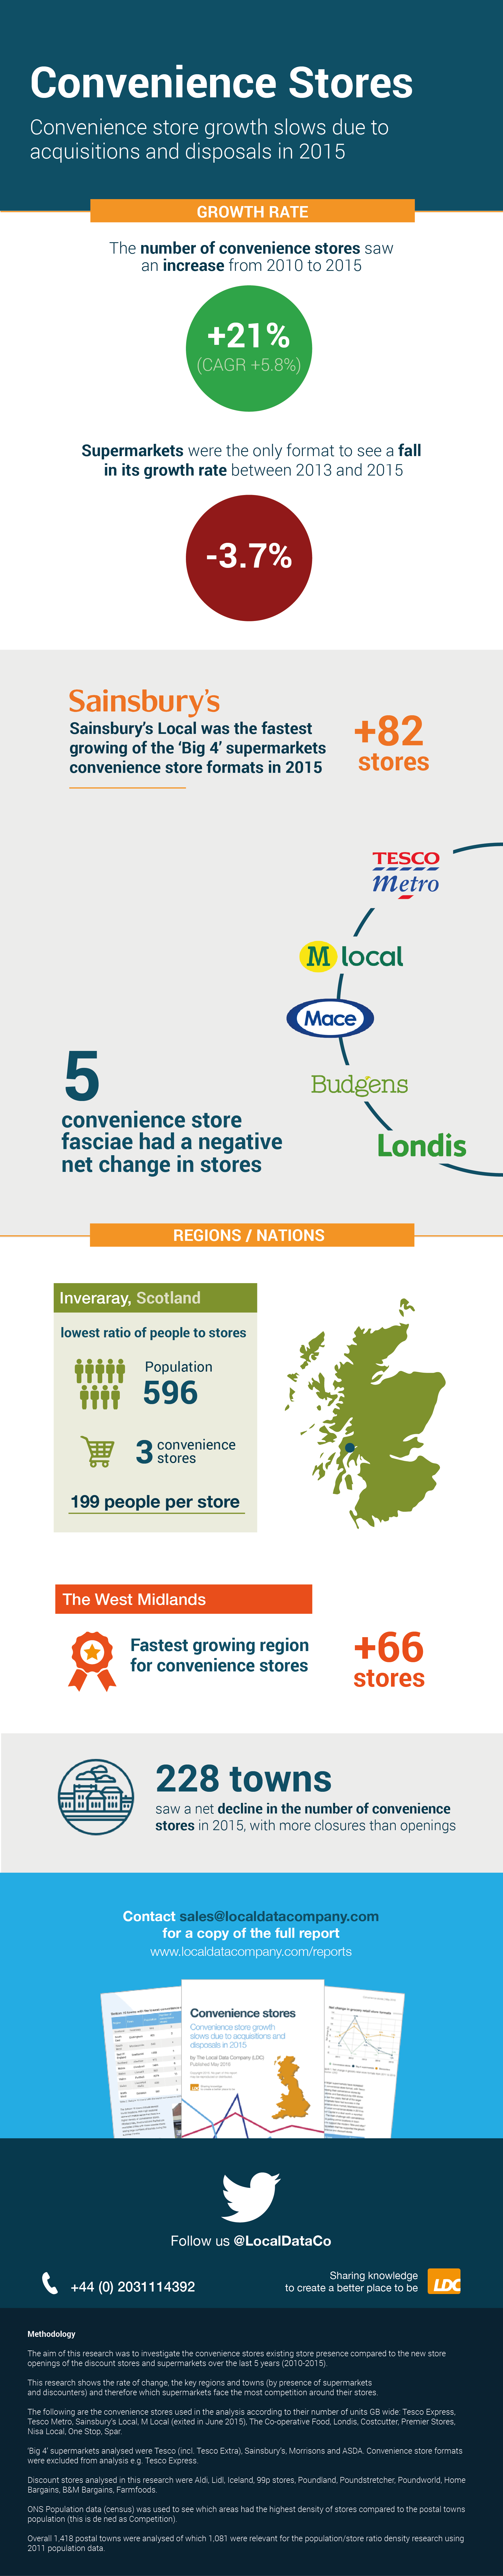 Infographic_-_Convenience_stores_May_2016-02.png